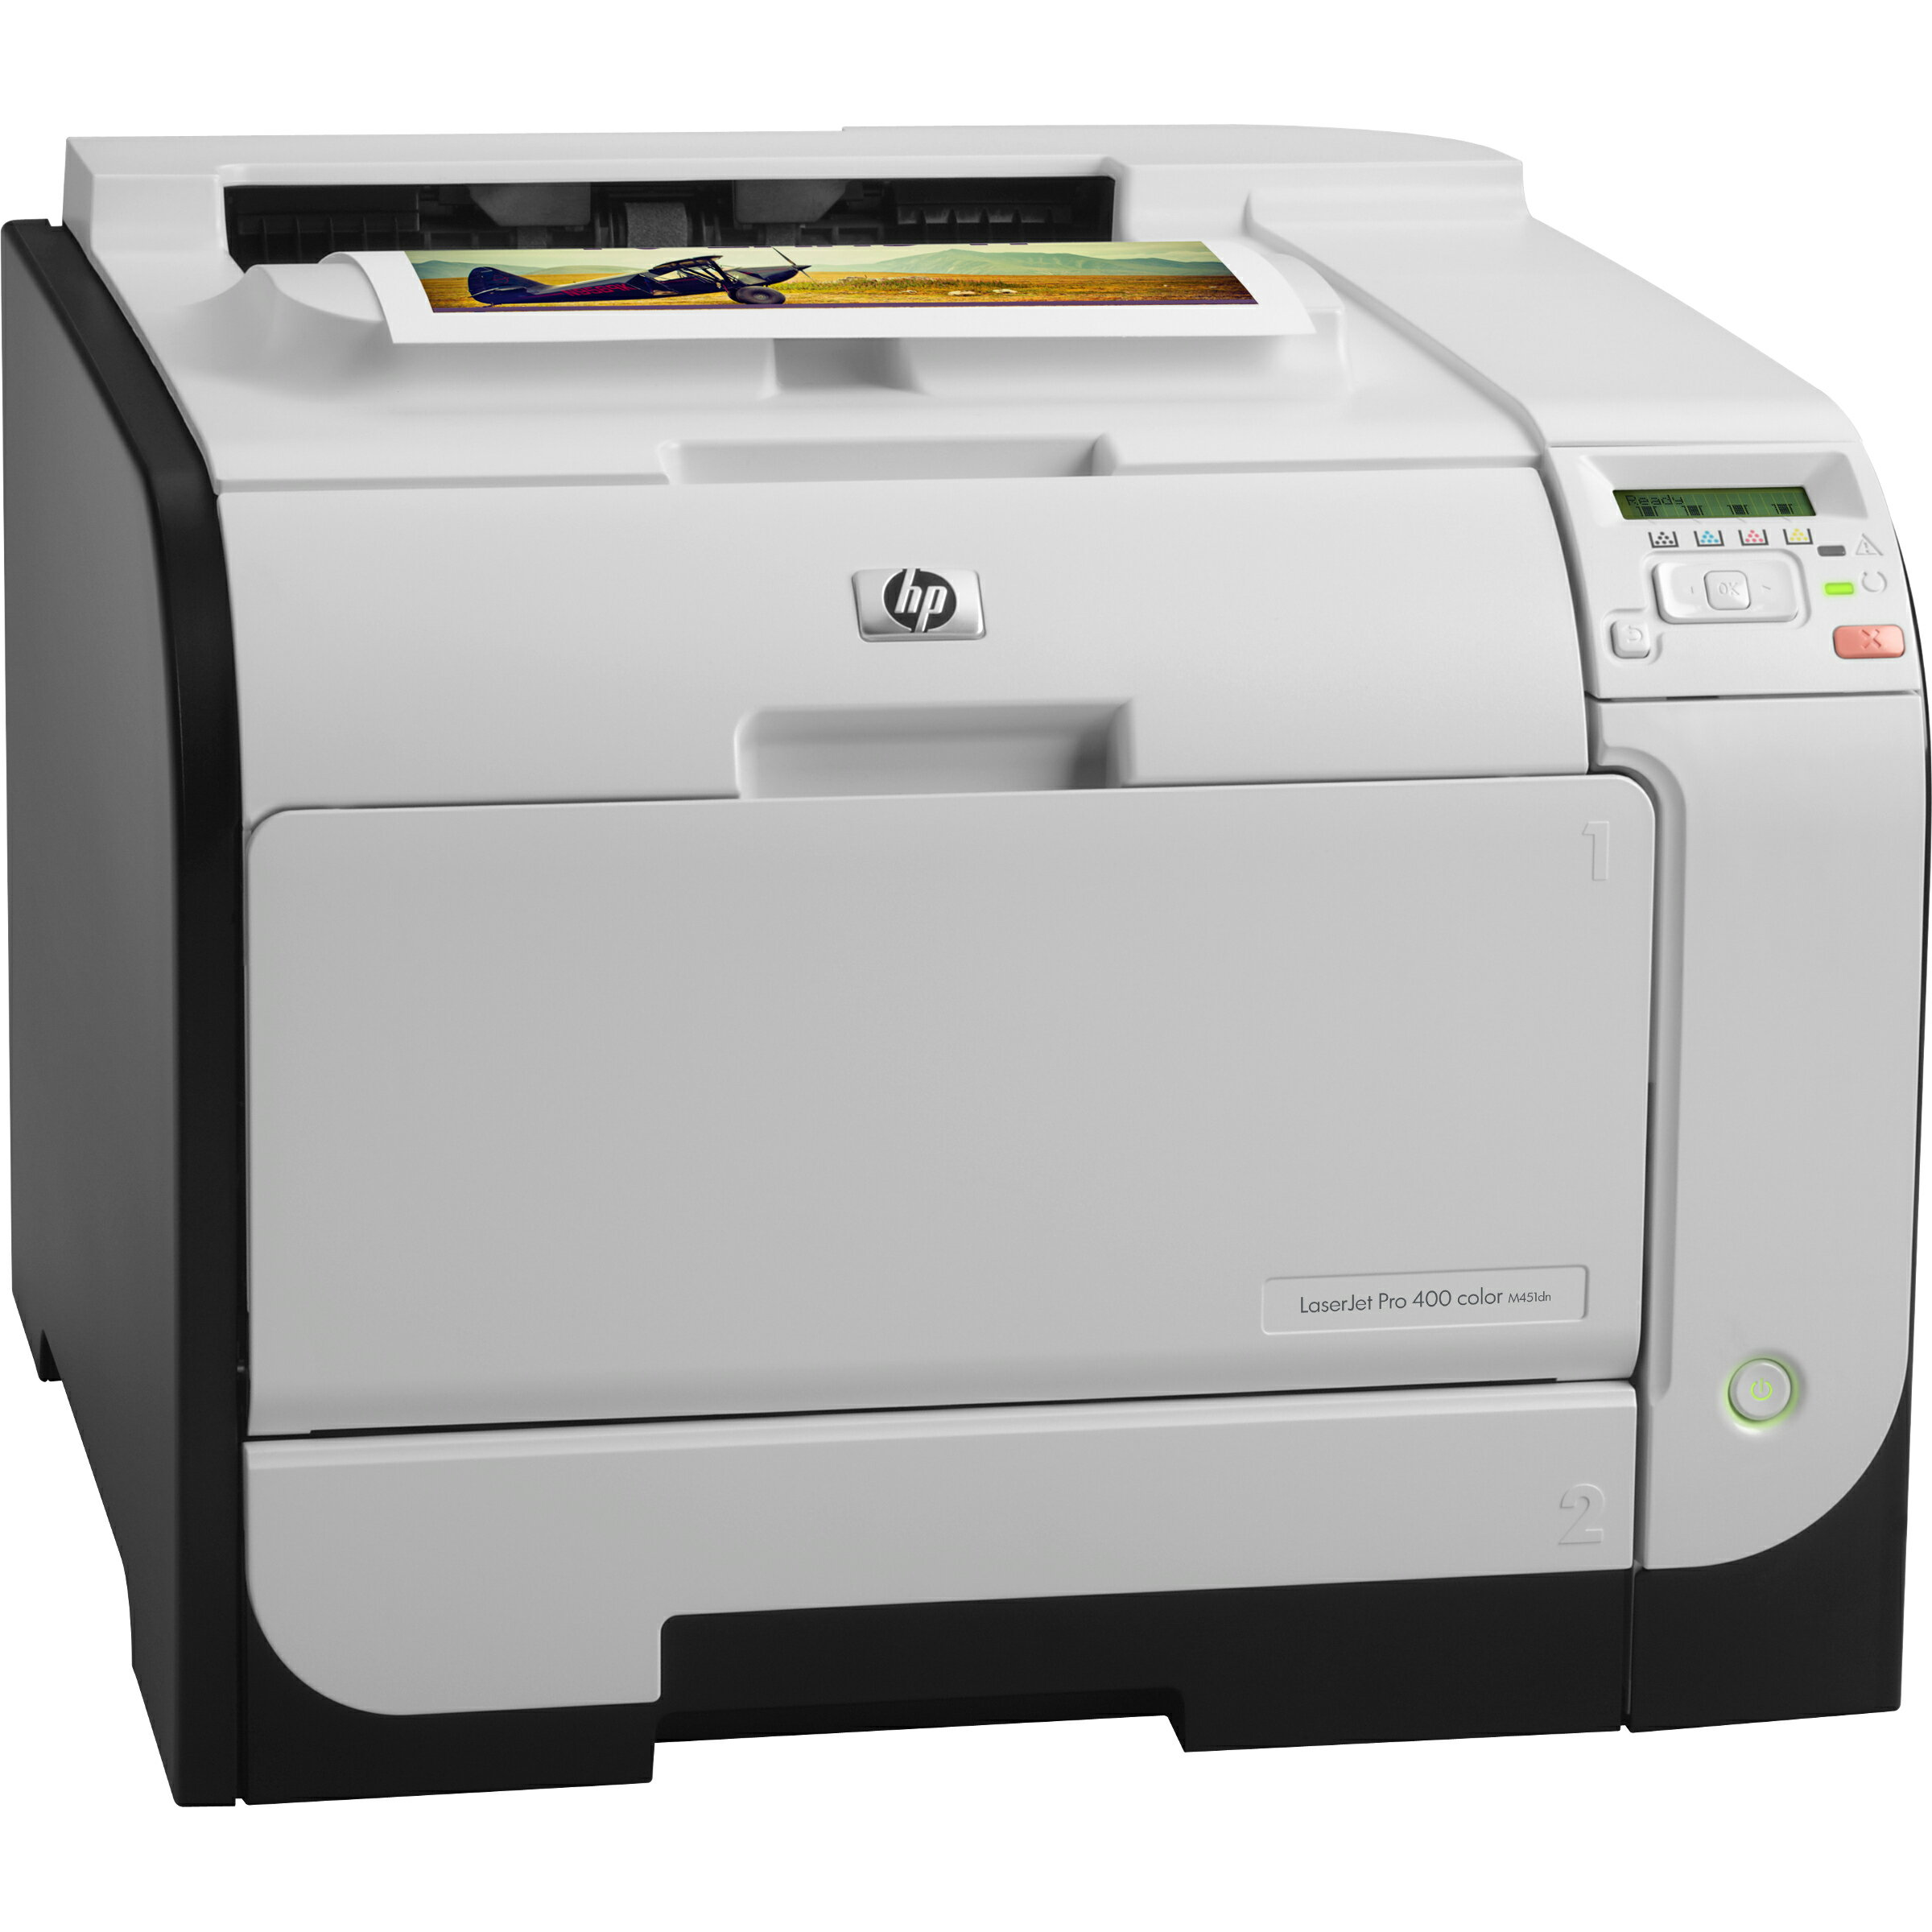 HP LaserJet Pro 400 M451DN Laser Printer - Refurbished - Color - 600 x 600 dpi Print - Plain Paper Print - Desktop - 21 ppm Mono / 21 ppm Color Print - 300 sheets Standard Input Capacity - 40000 pages per month - Automatic Duplex Print - LCD - Ethernet - 3